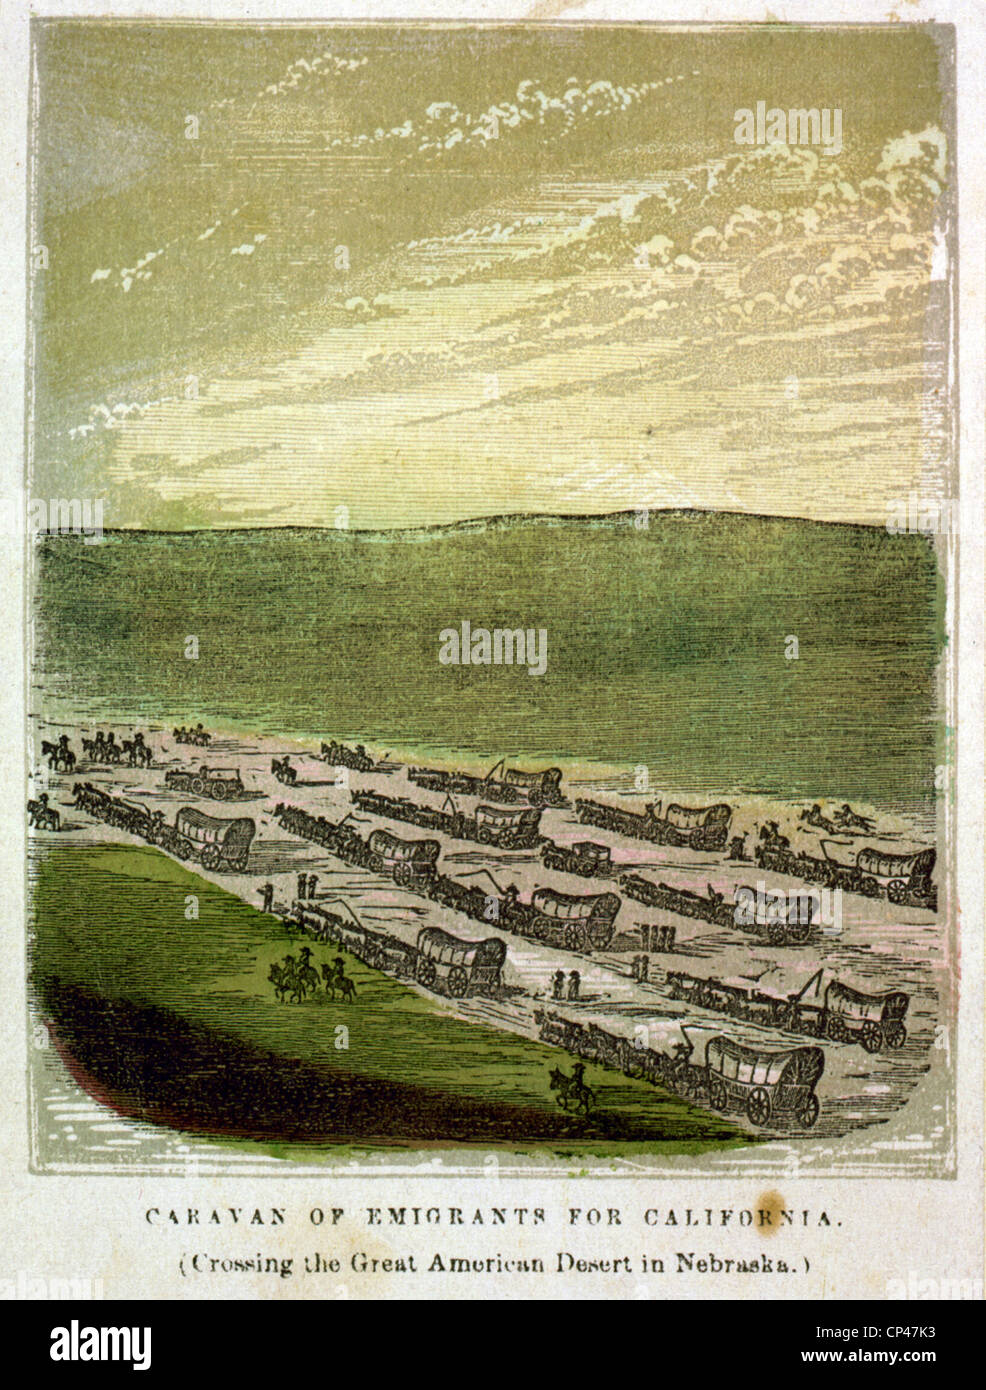 Caravan of emigrants for California (Crossing the great American desert in Nebraska)  1850 - Stock Image